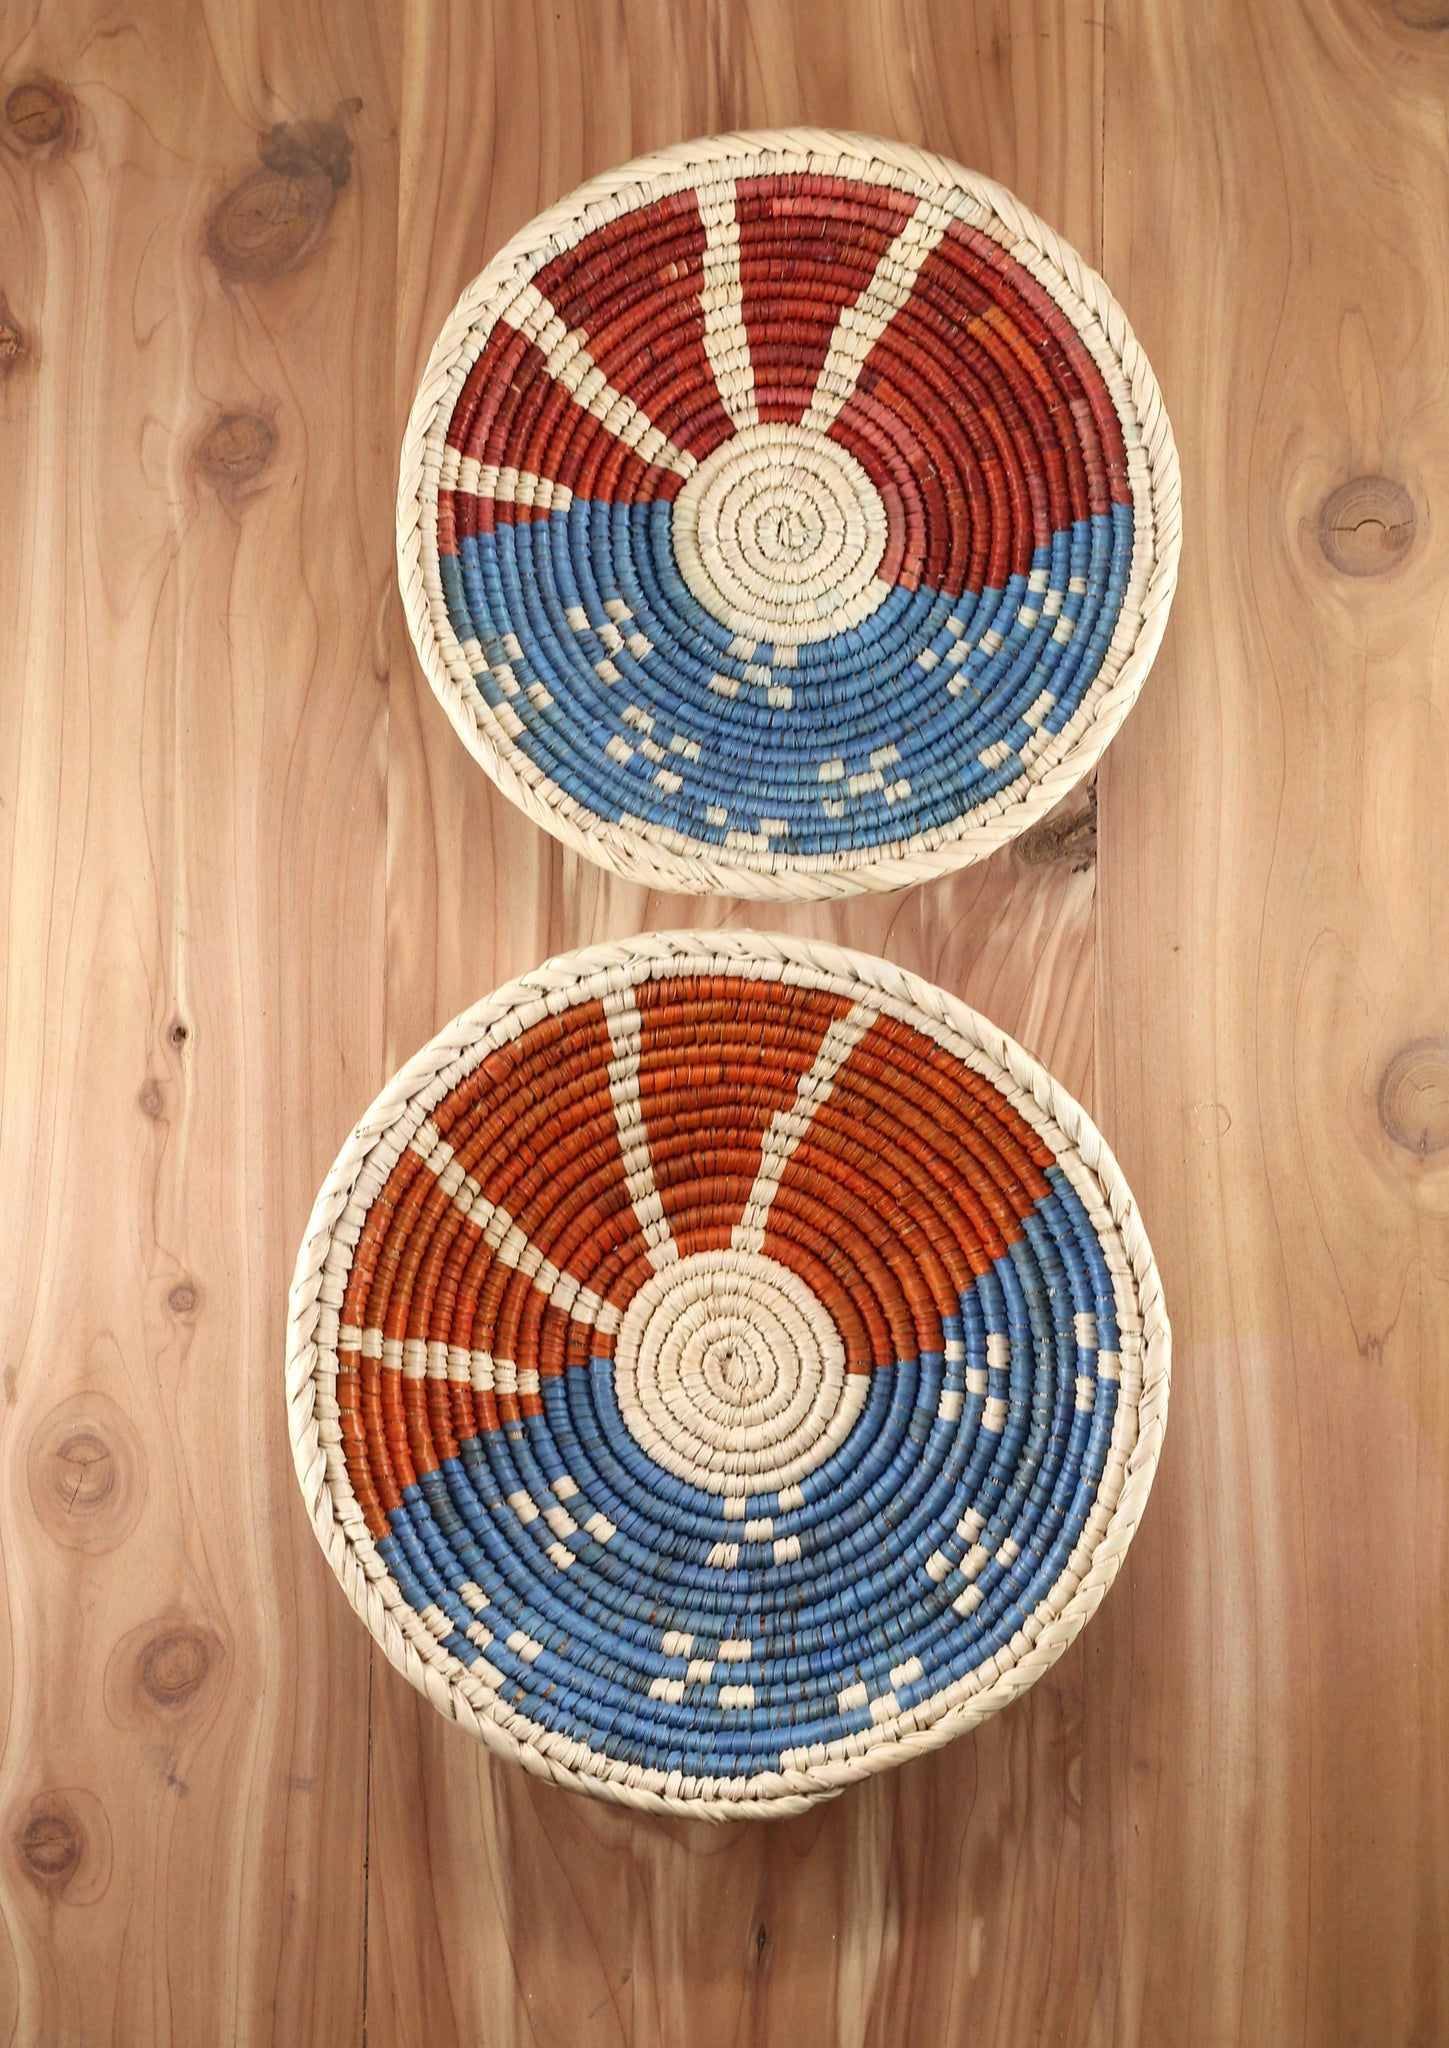 Southwest Baskets ~ Handcrafted with tightly woven palm leaves. Red/Orange, White and Blue design.  Set of 2.   Perfect for jewelry and trinkets.  FREE SHIPPING RedRiverIron.com